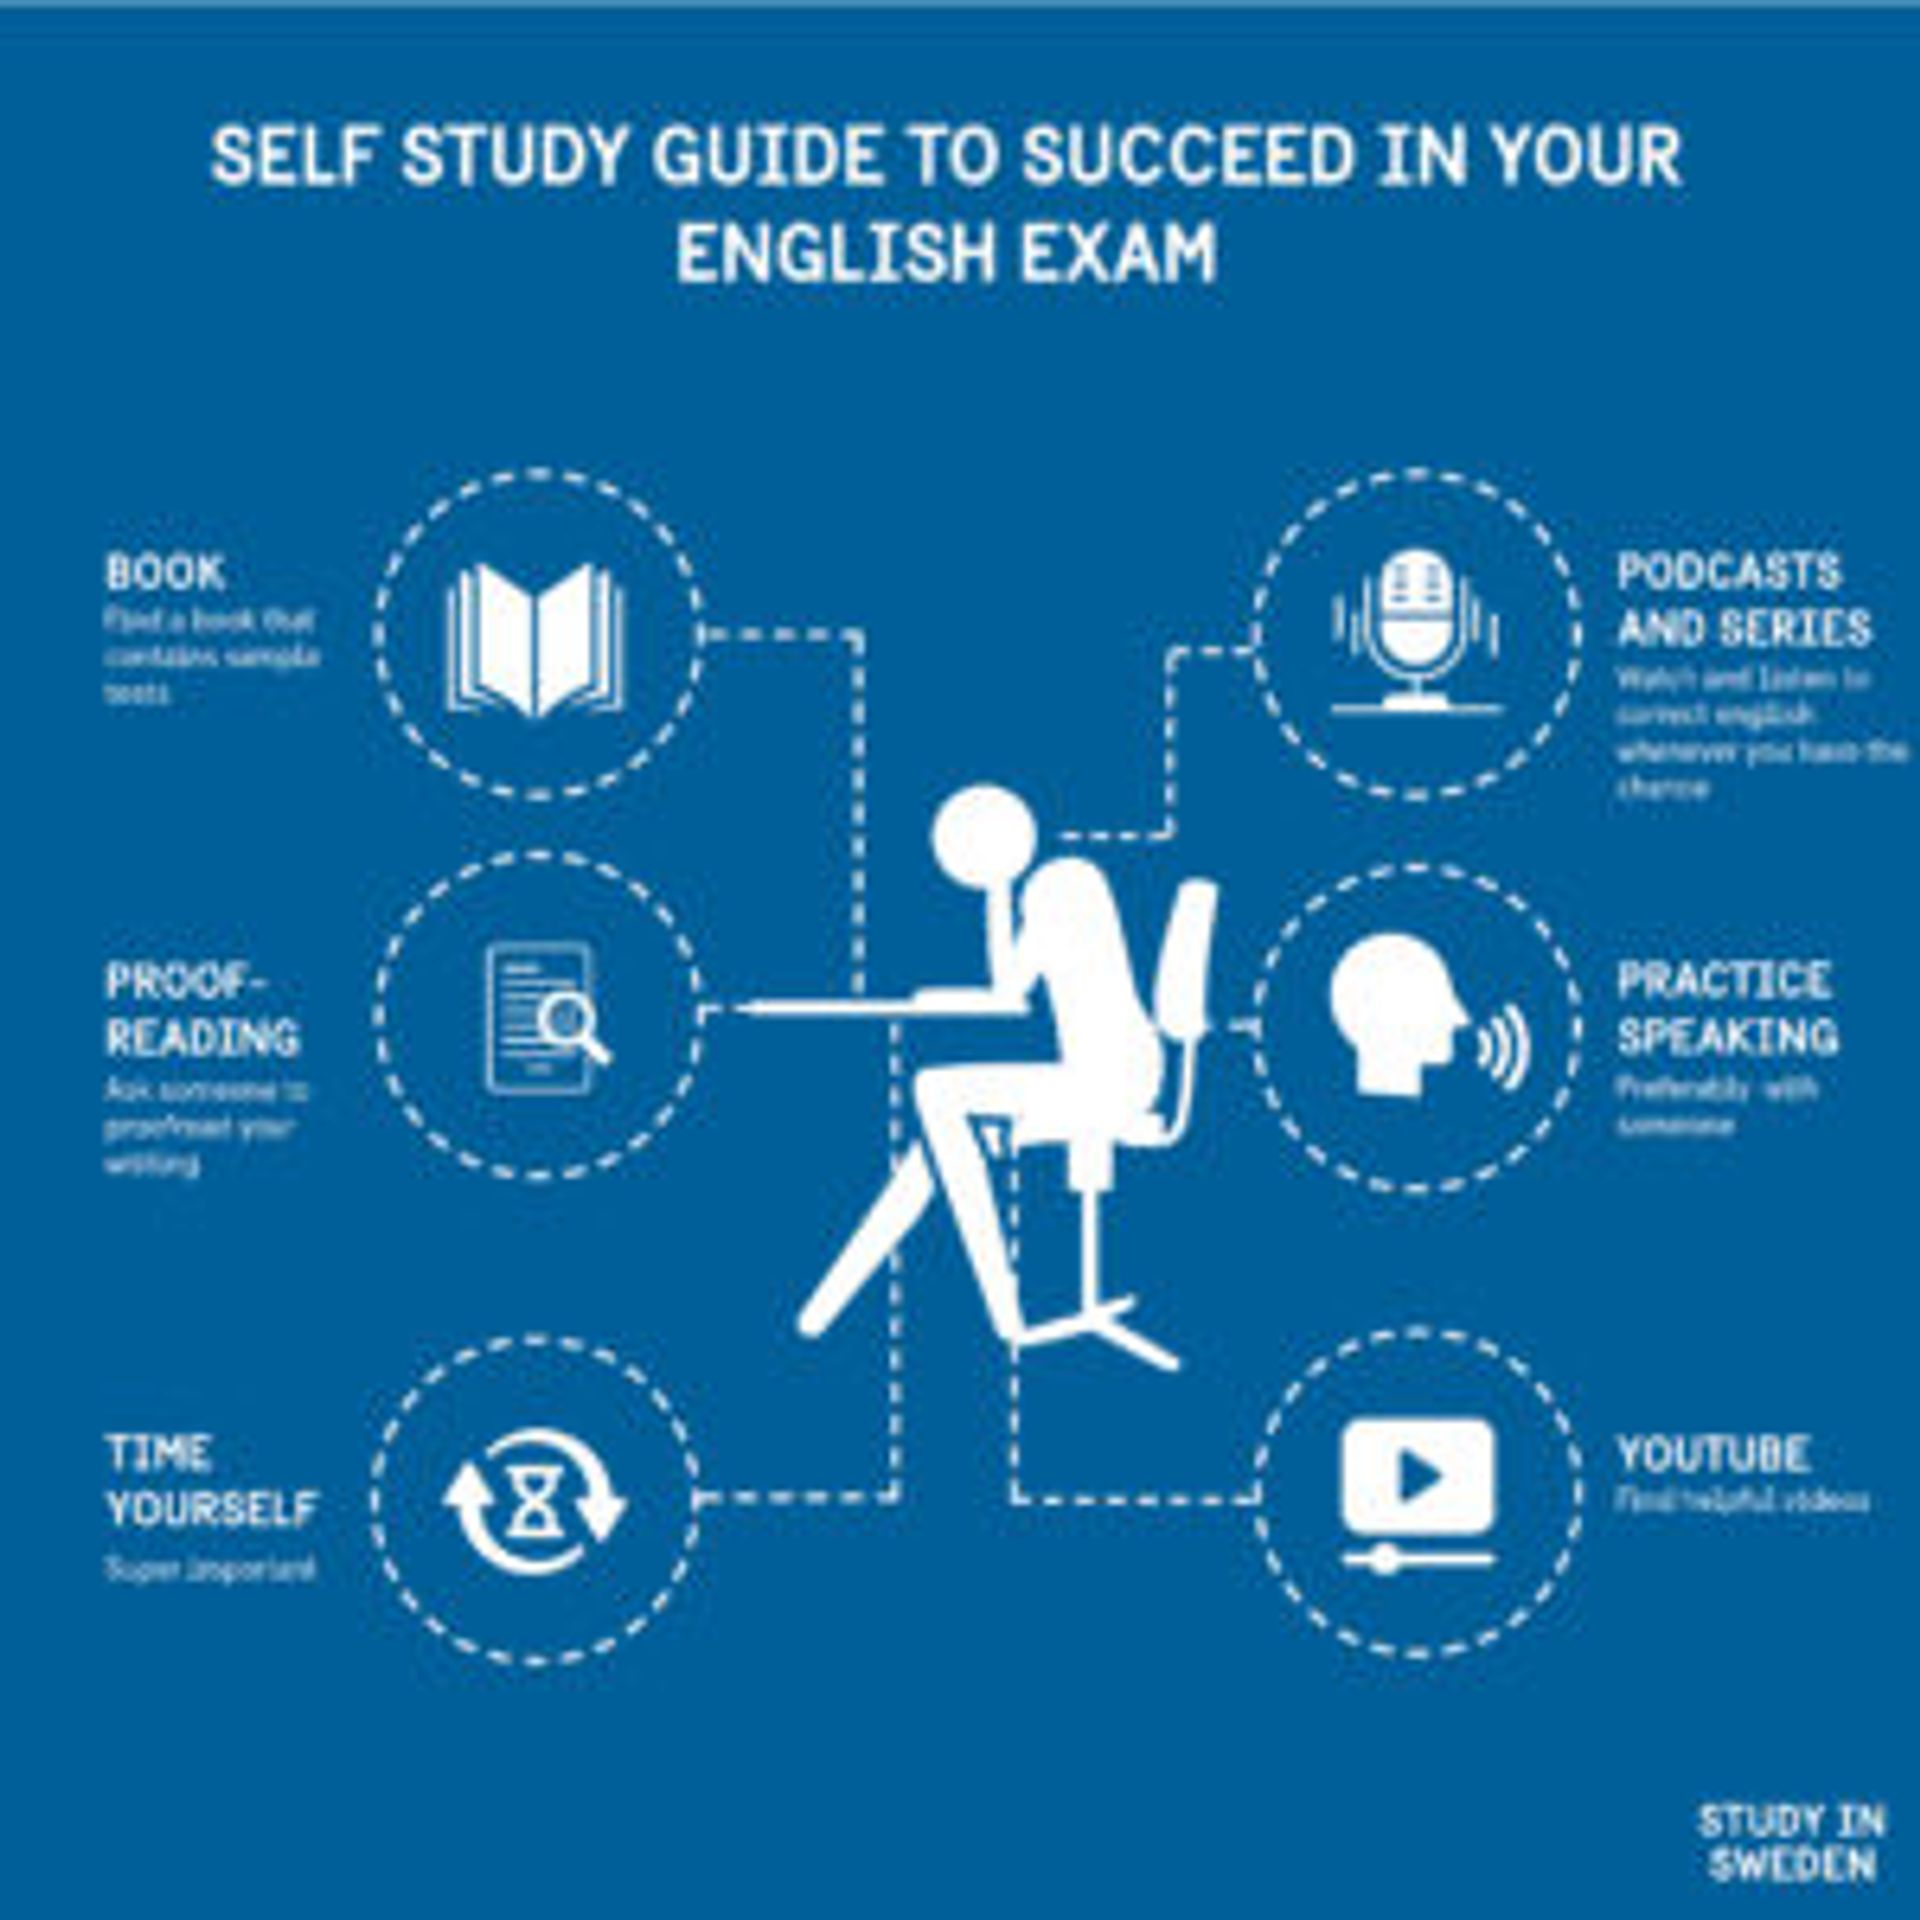 Self-study guide to succeed in your English exam.   Book: find a book that includes sample tests.  Proof-reading: ask someone to read your texts.  Time yourself.  Podcasts and series.  Practice speaking: practice with someone.  YouTube: find useful videos.